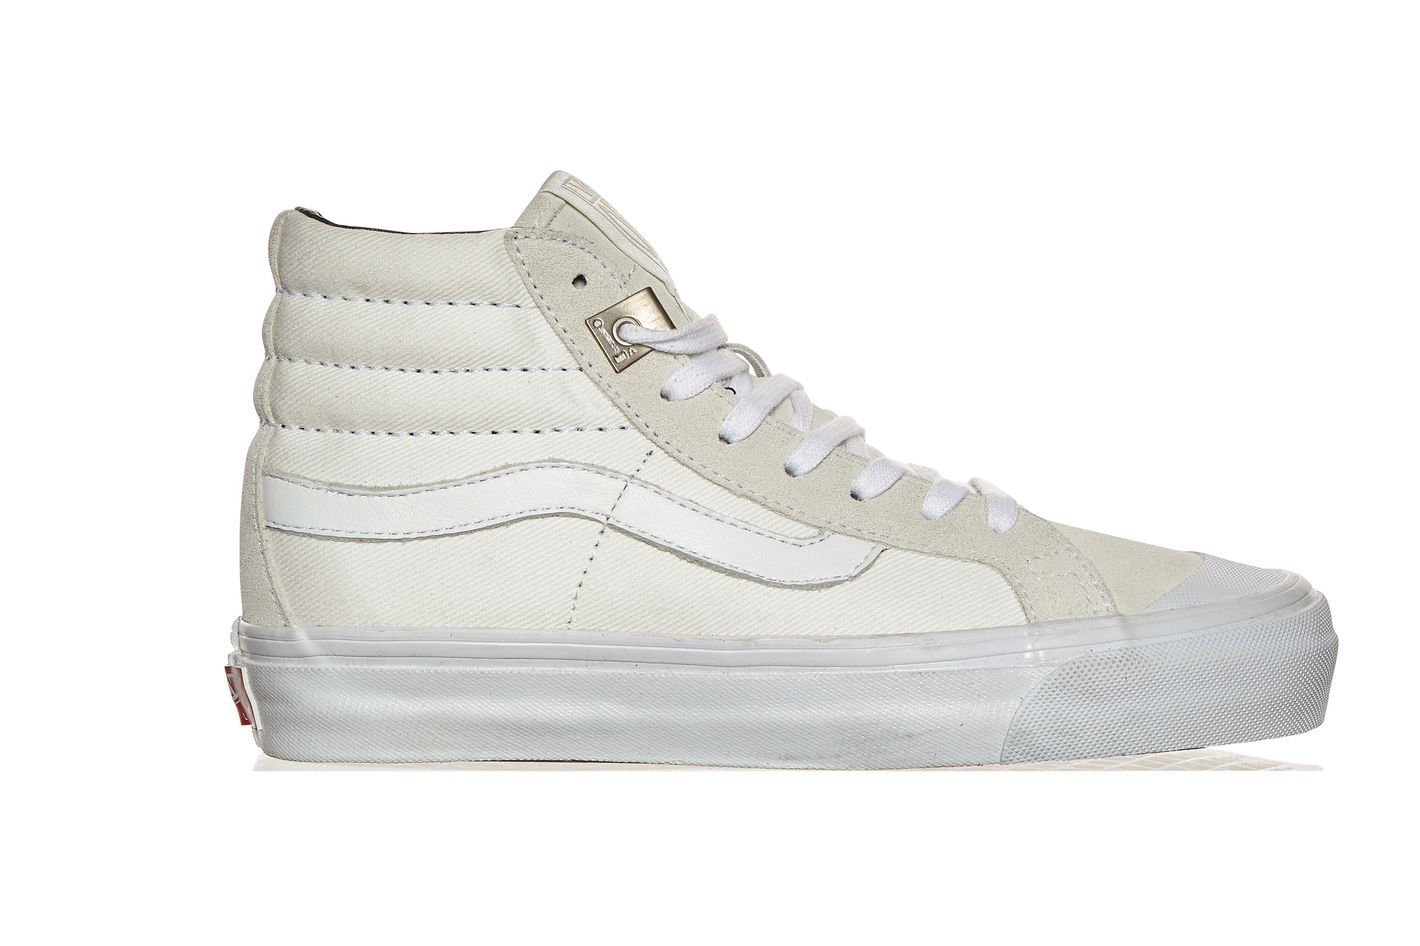 Vans X ALYX  OG 138 SK8 High Top Leather Sneakers